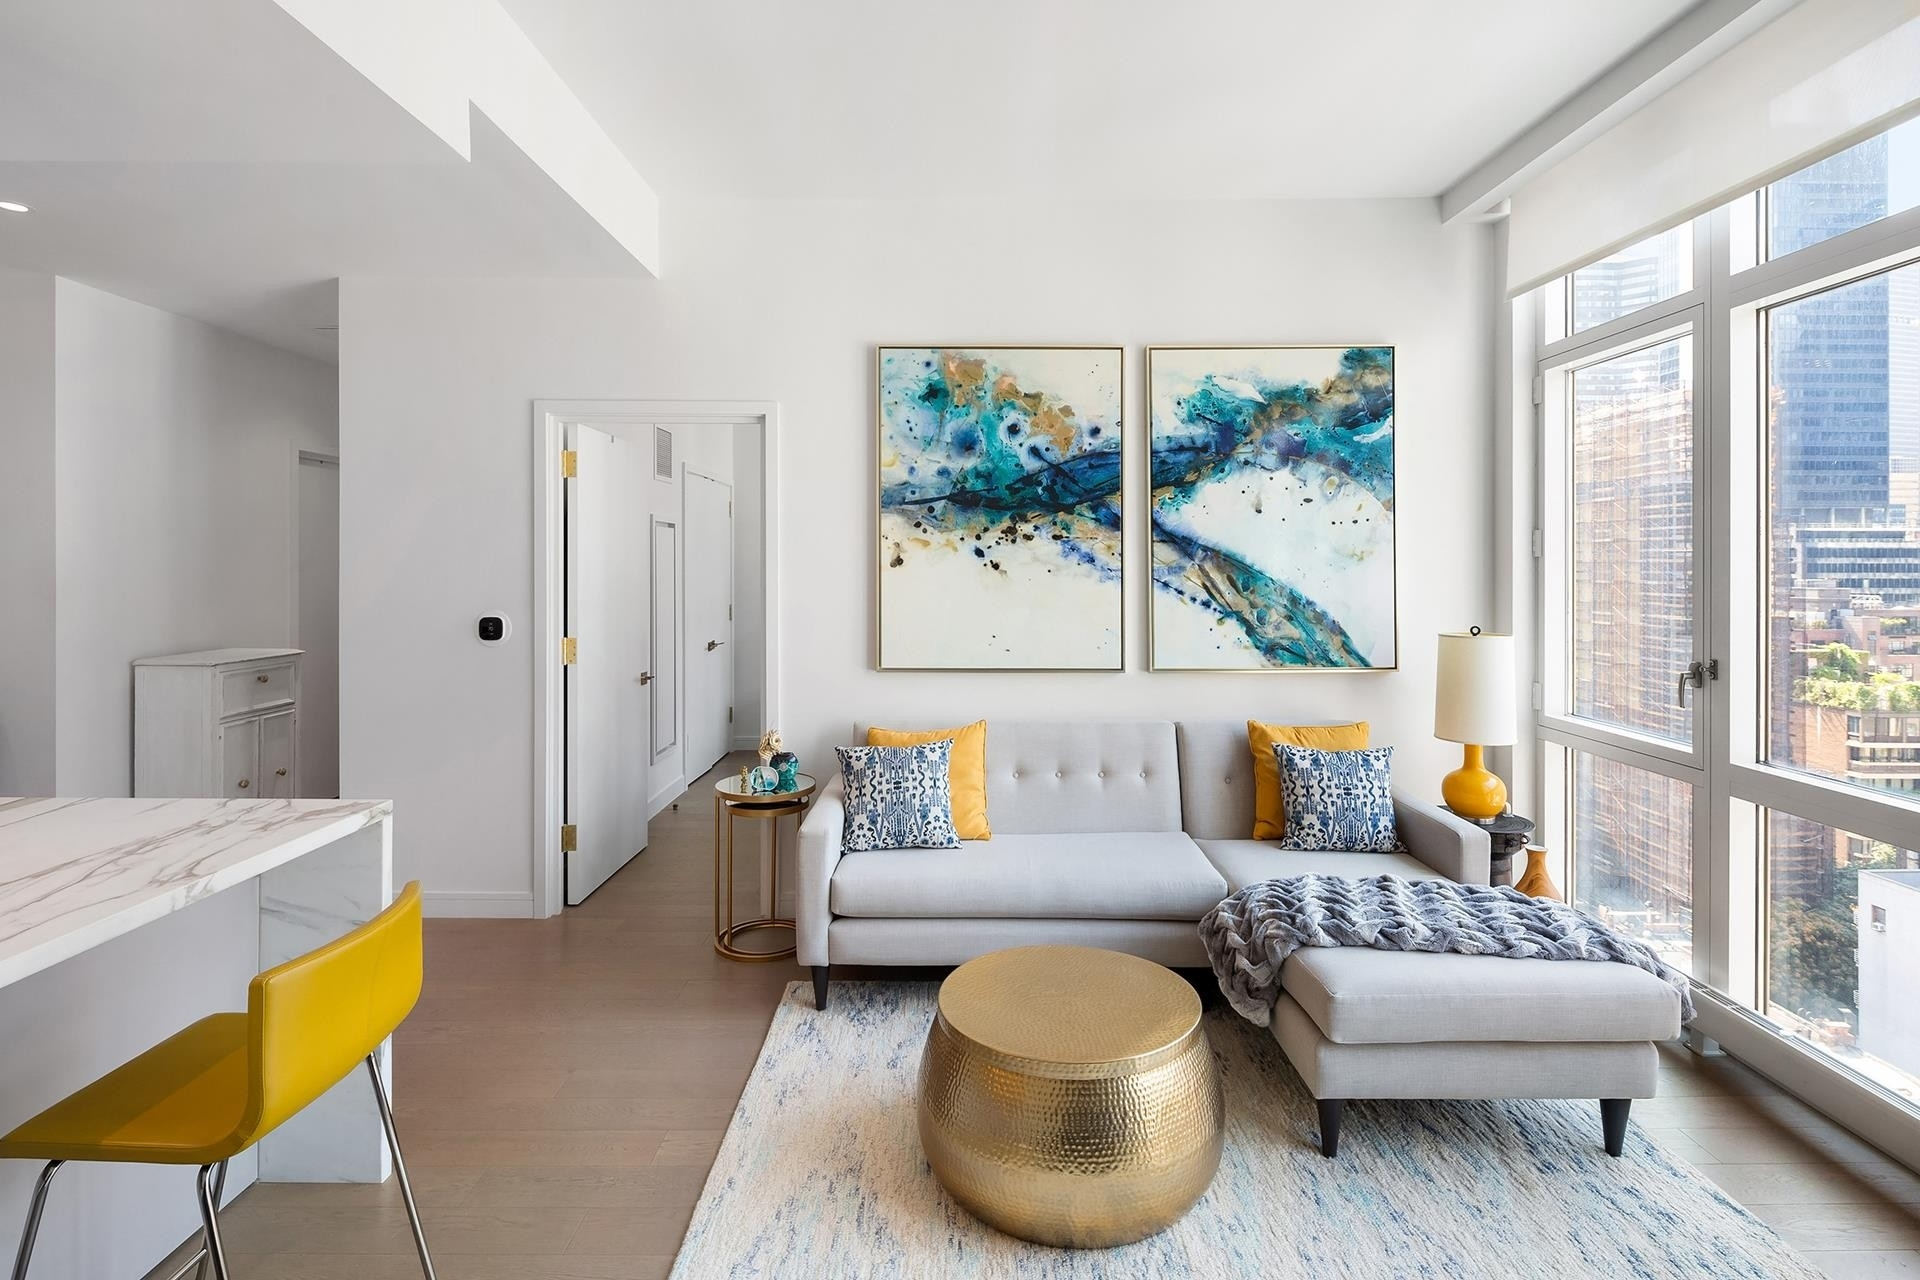 Condominium at Halcyon, 305 East 51st St, 14C Turtle Bay, New York, NY 10022